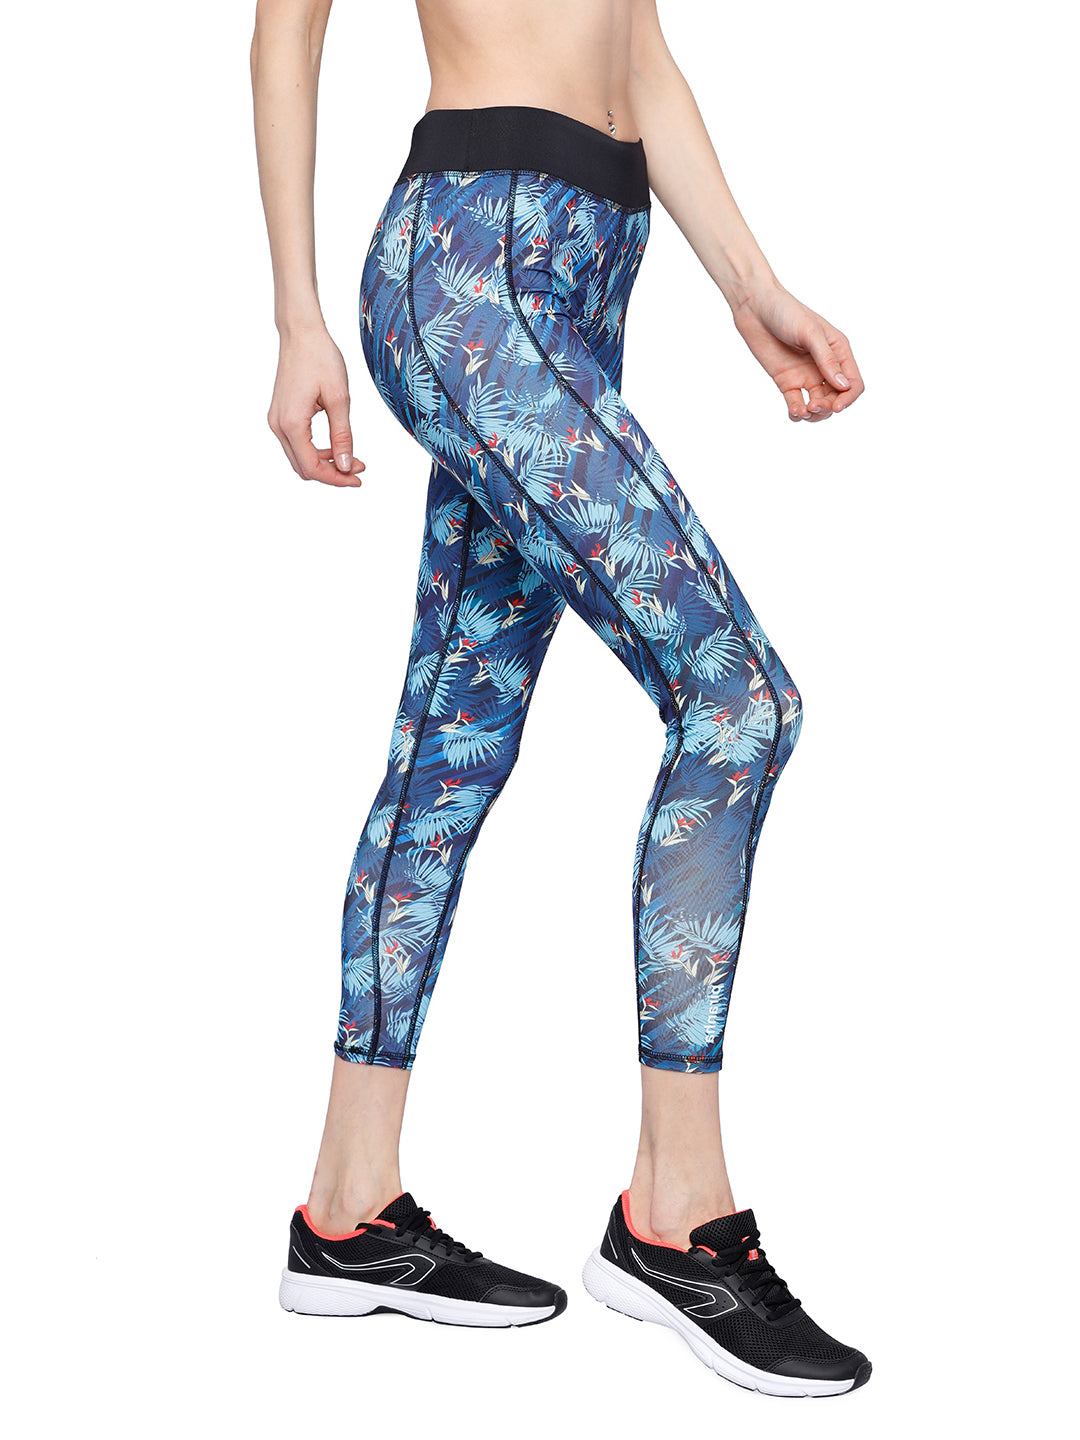 Piranha Women's Printed Yoga And Running Pants - YP136